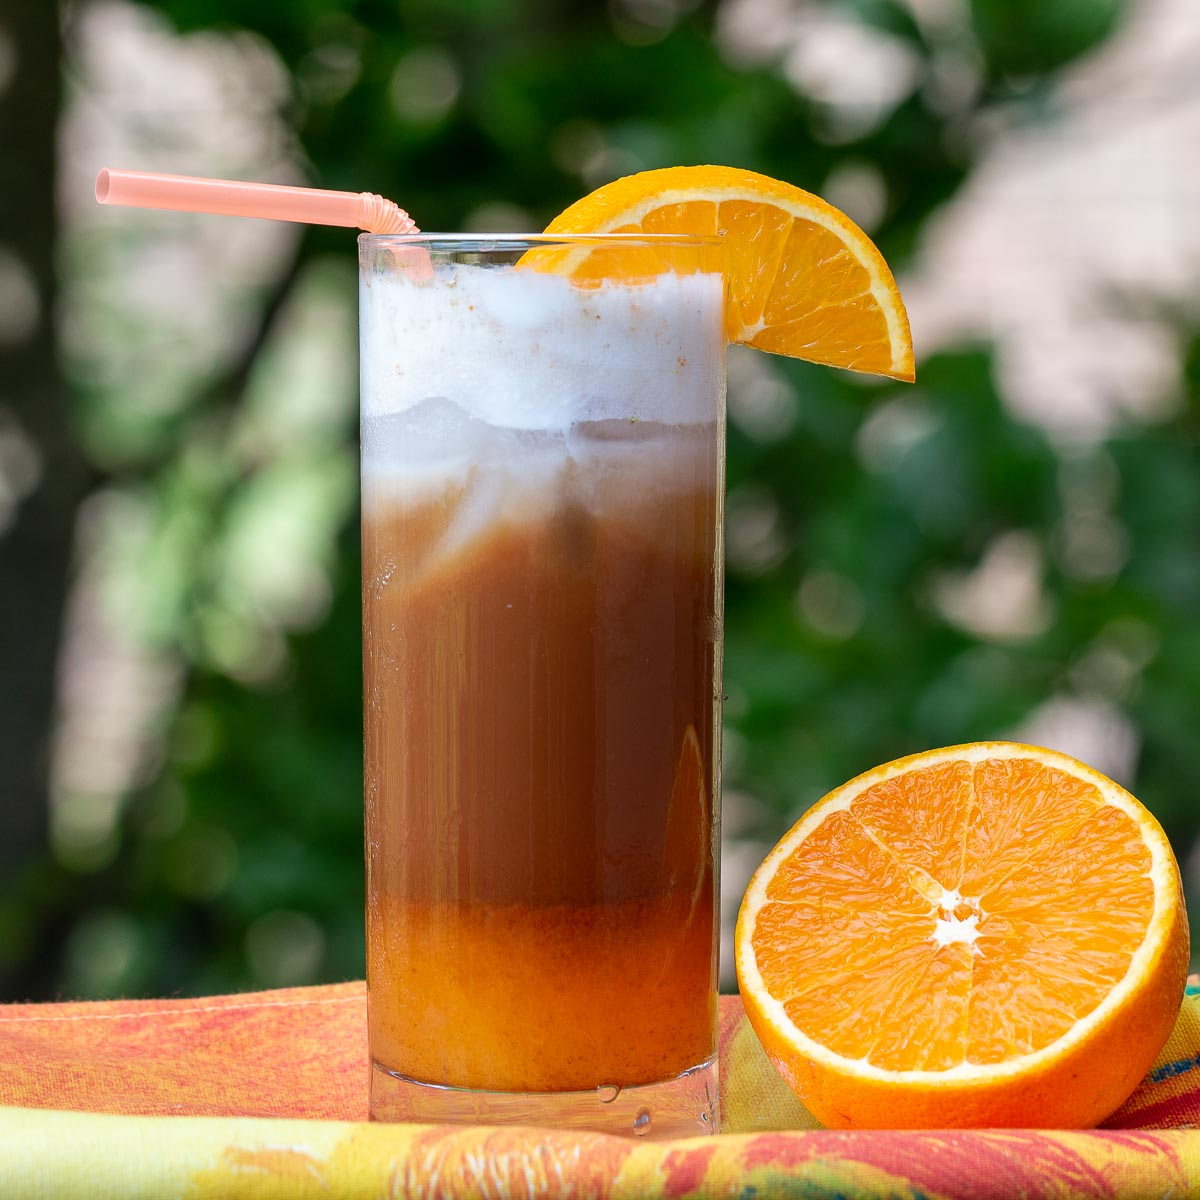 Outside sunny shot of iced bumblebee coffee garnished with oranges.